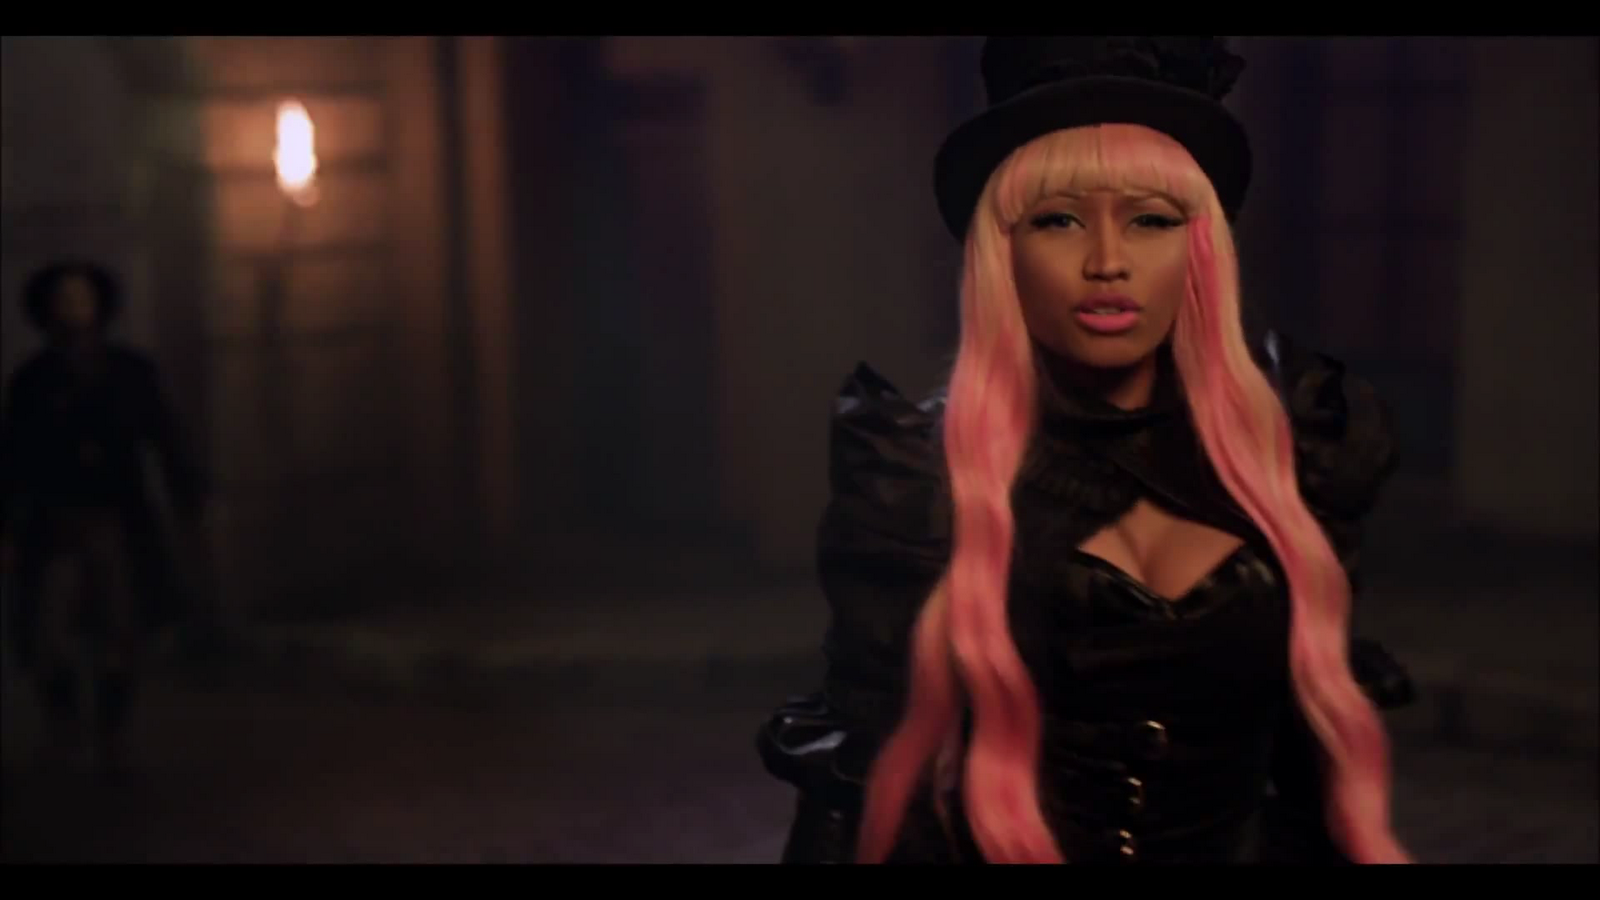 http://3.bp.blogspot.com/-P_yRn-TJszo/Tzm72hzyHnI/AAAAAAAAJjw/8TcOcFlhK5g/s1600/Captura-David+Guetta+ft.+Nicki+Minaj+-+Turn+Me+On.mkv-5.png